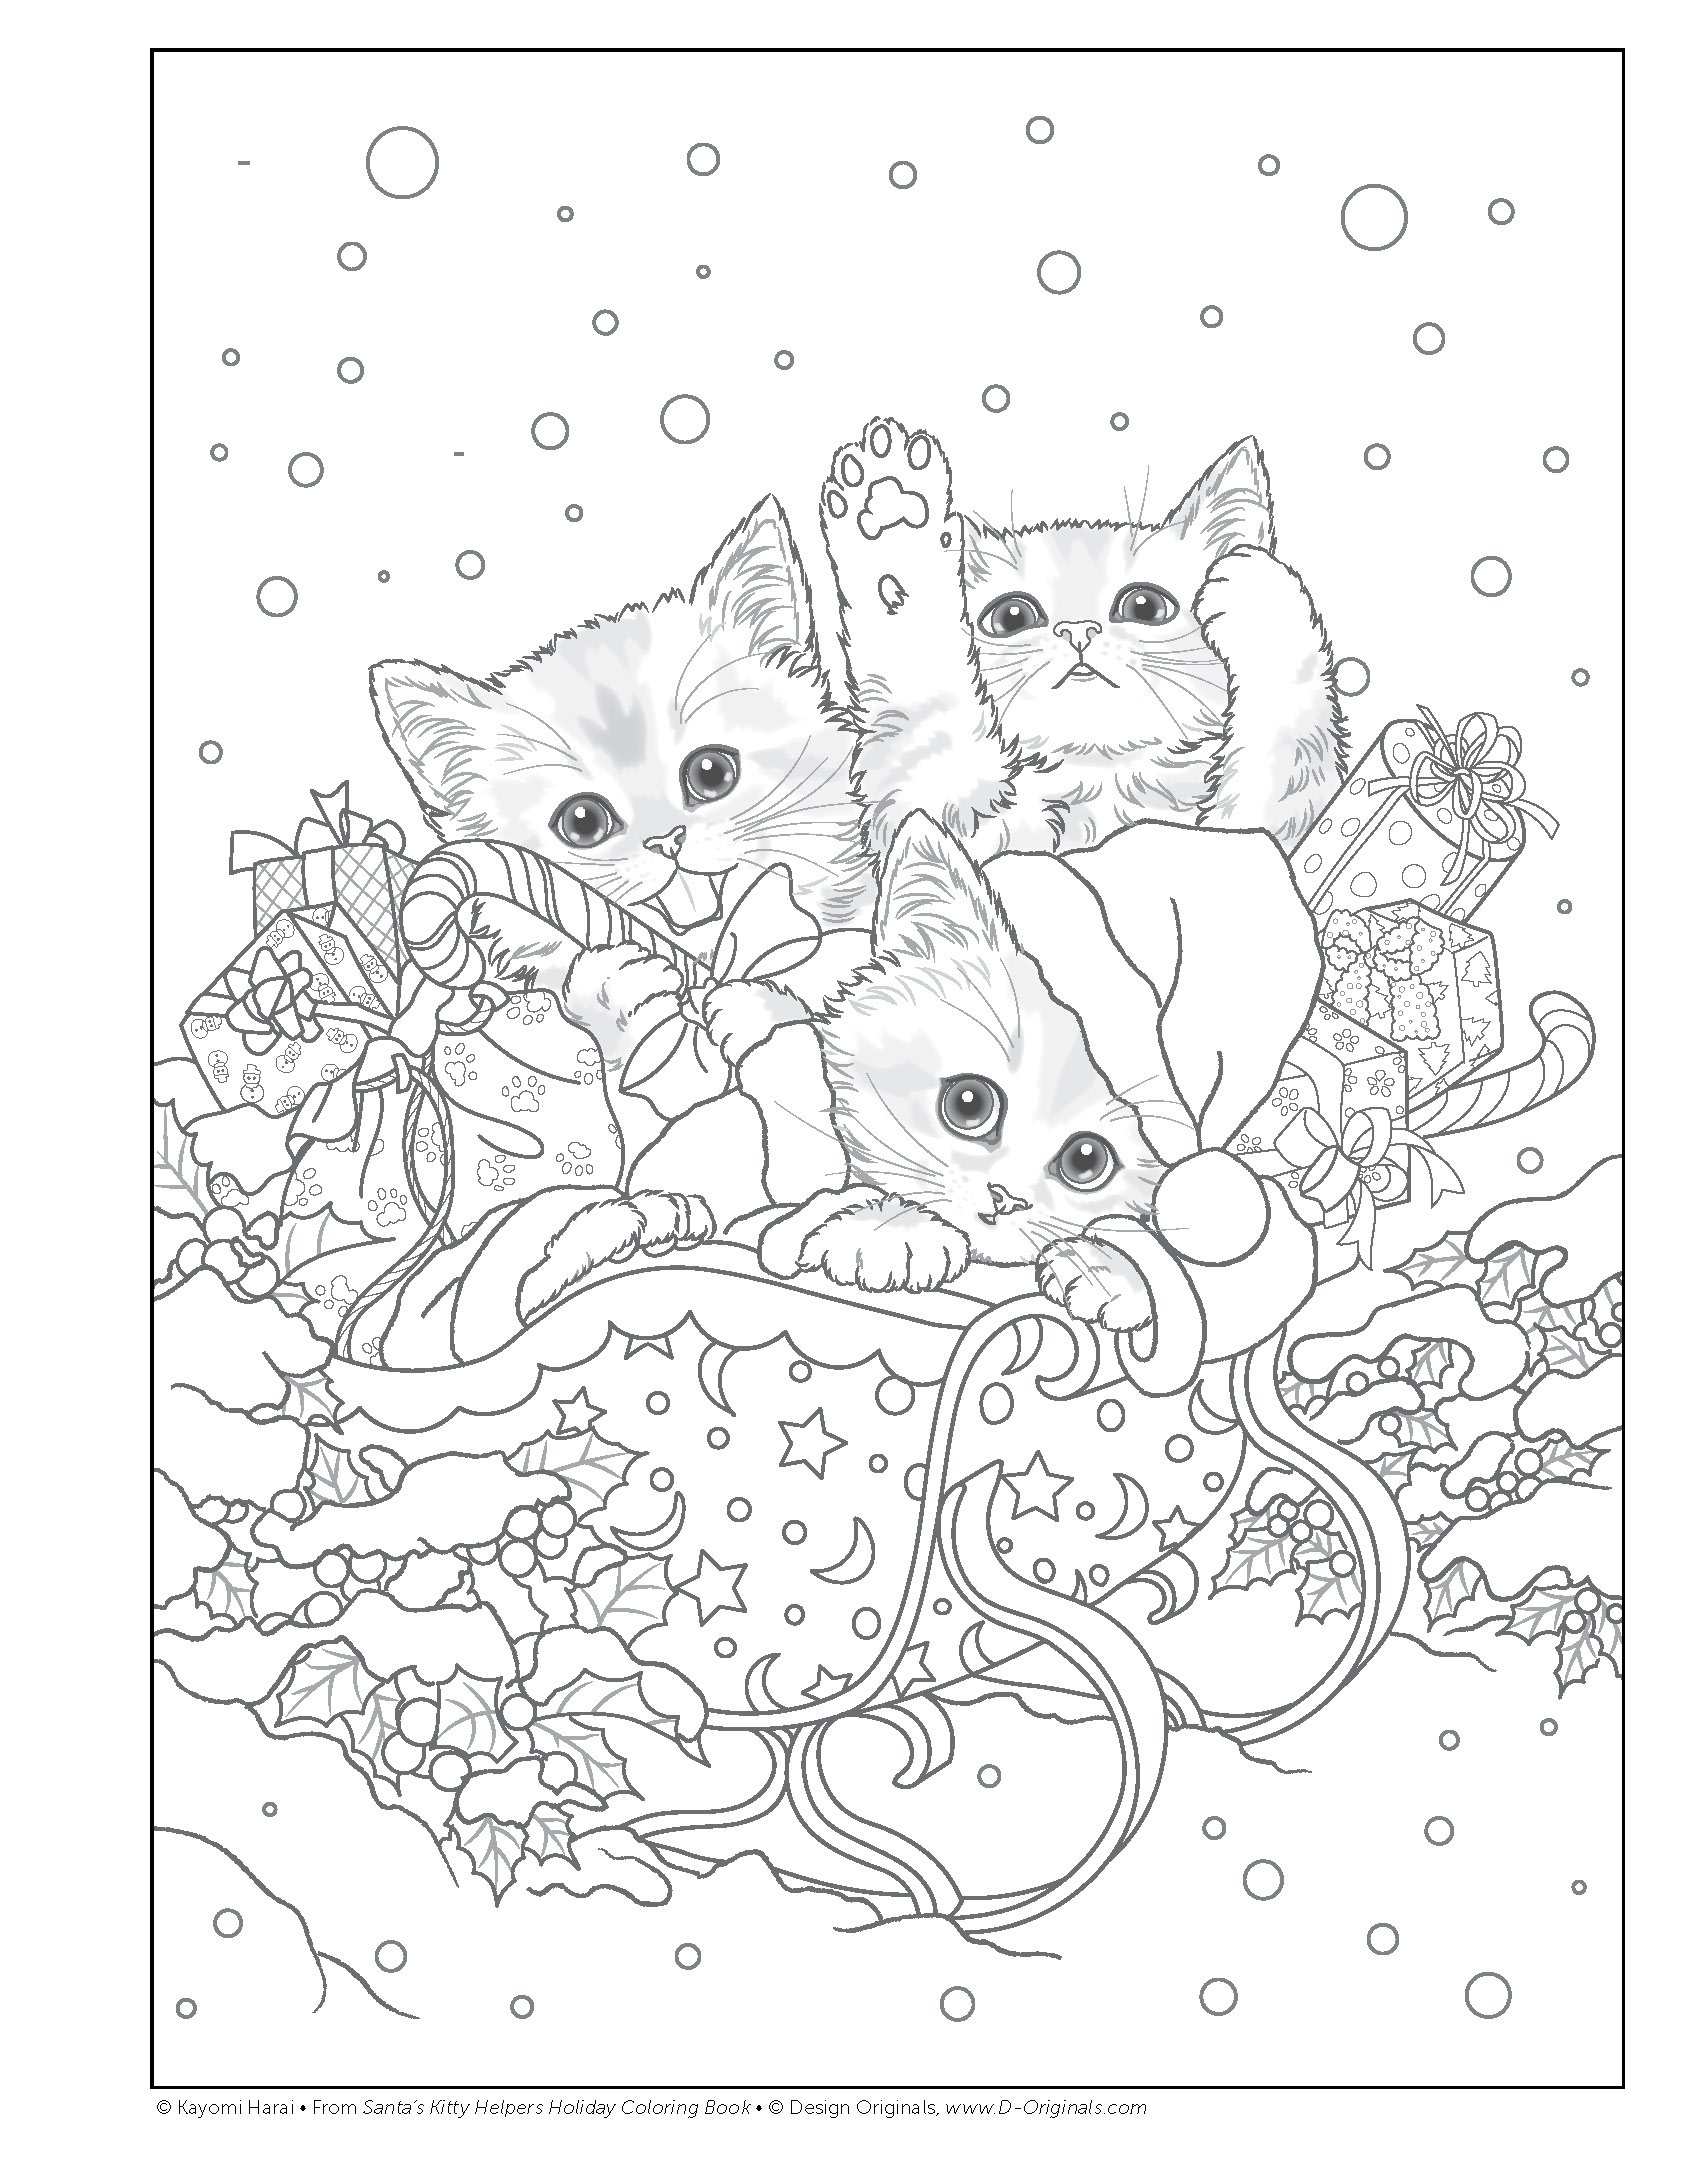 Santas Kitty Helpers Holiday Coloring Book Design Originals